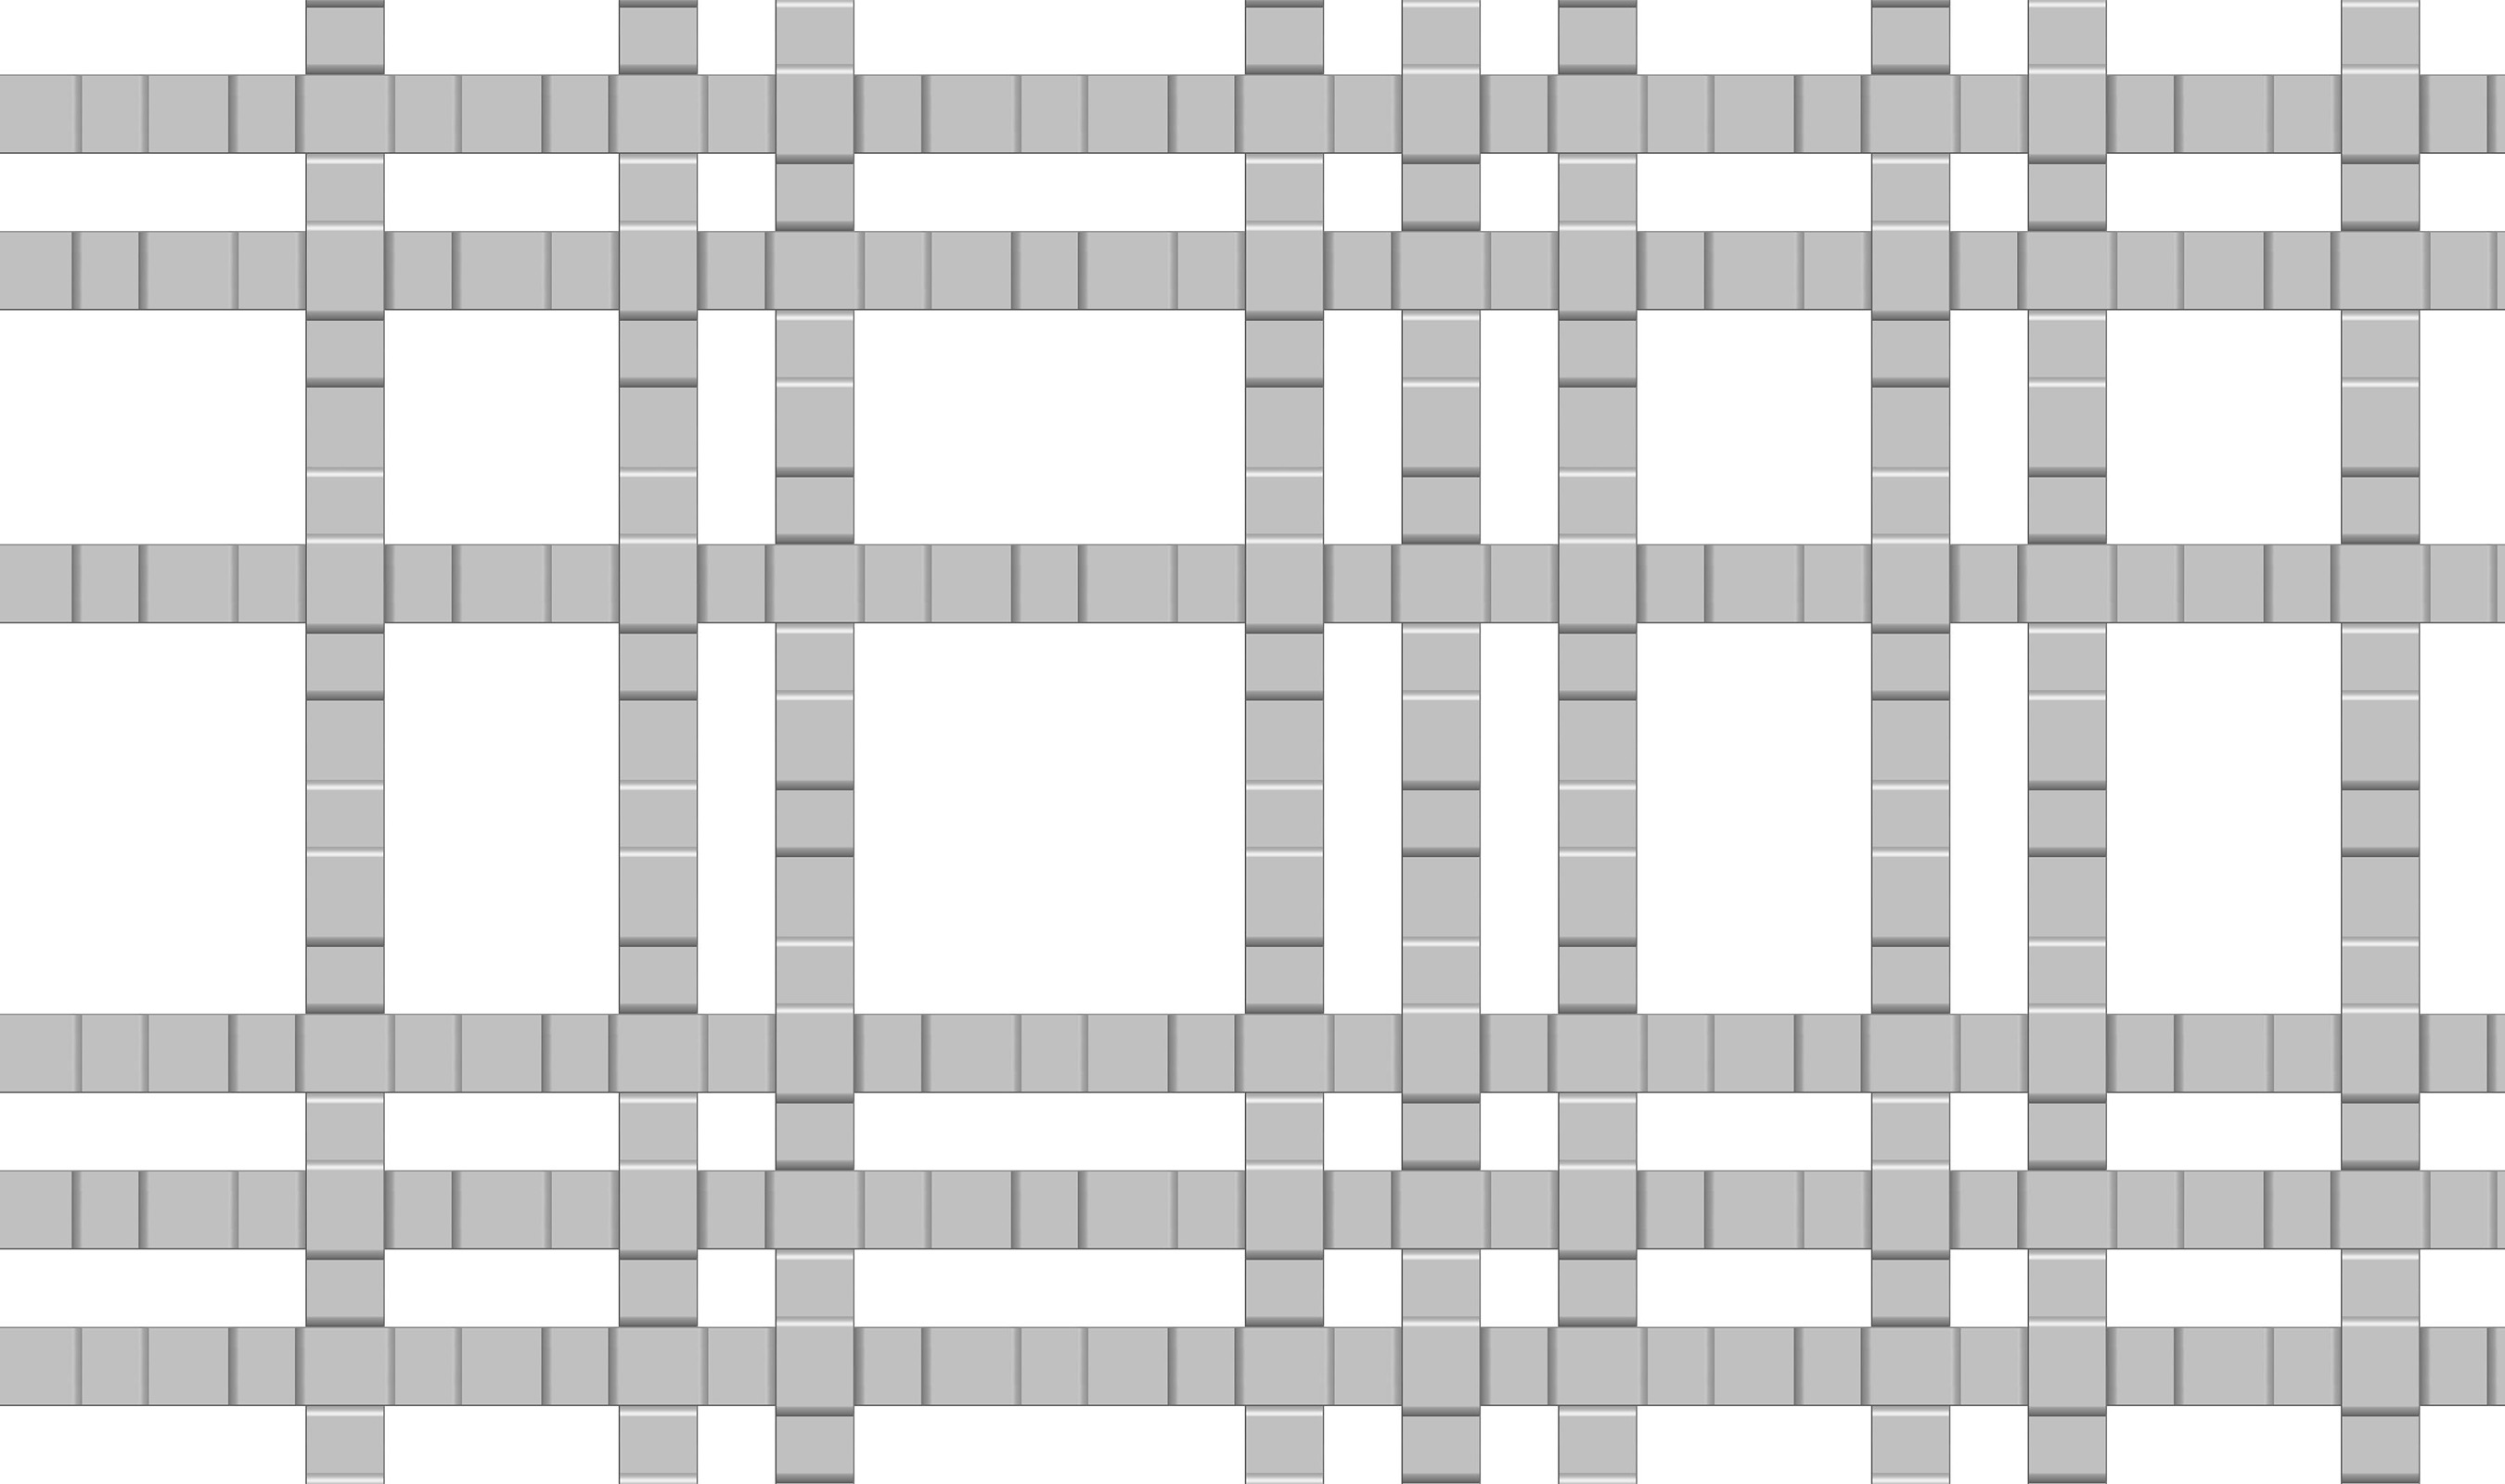 SJD-41 large wire mesh pattern drawn in CAD